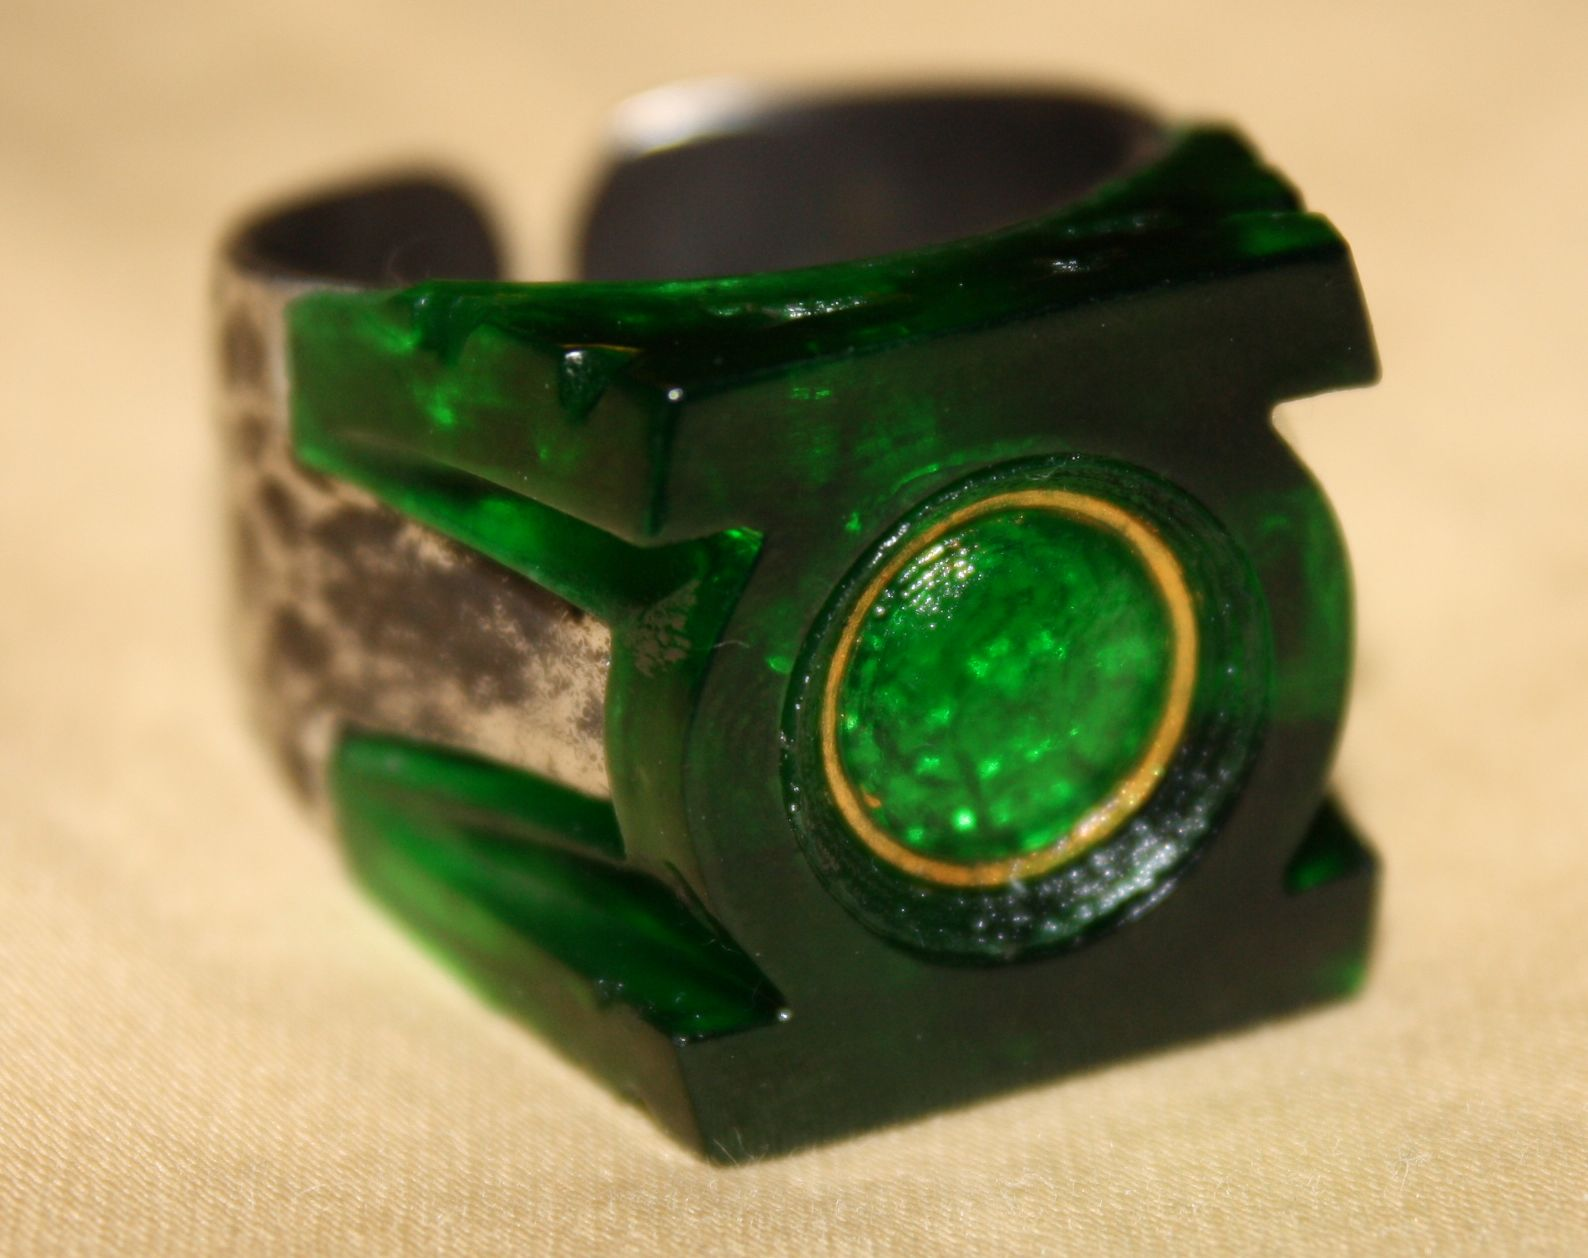 Green Lantern ring haha that's so awesome | Things i want ...